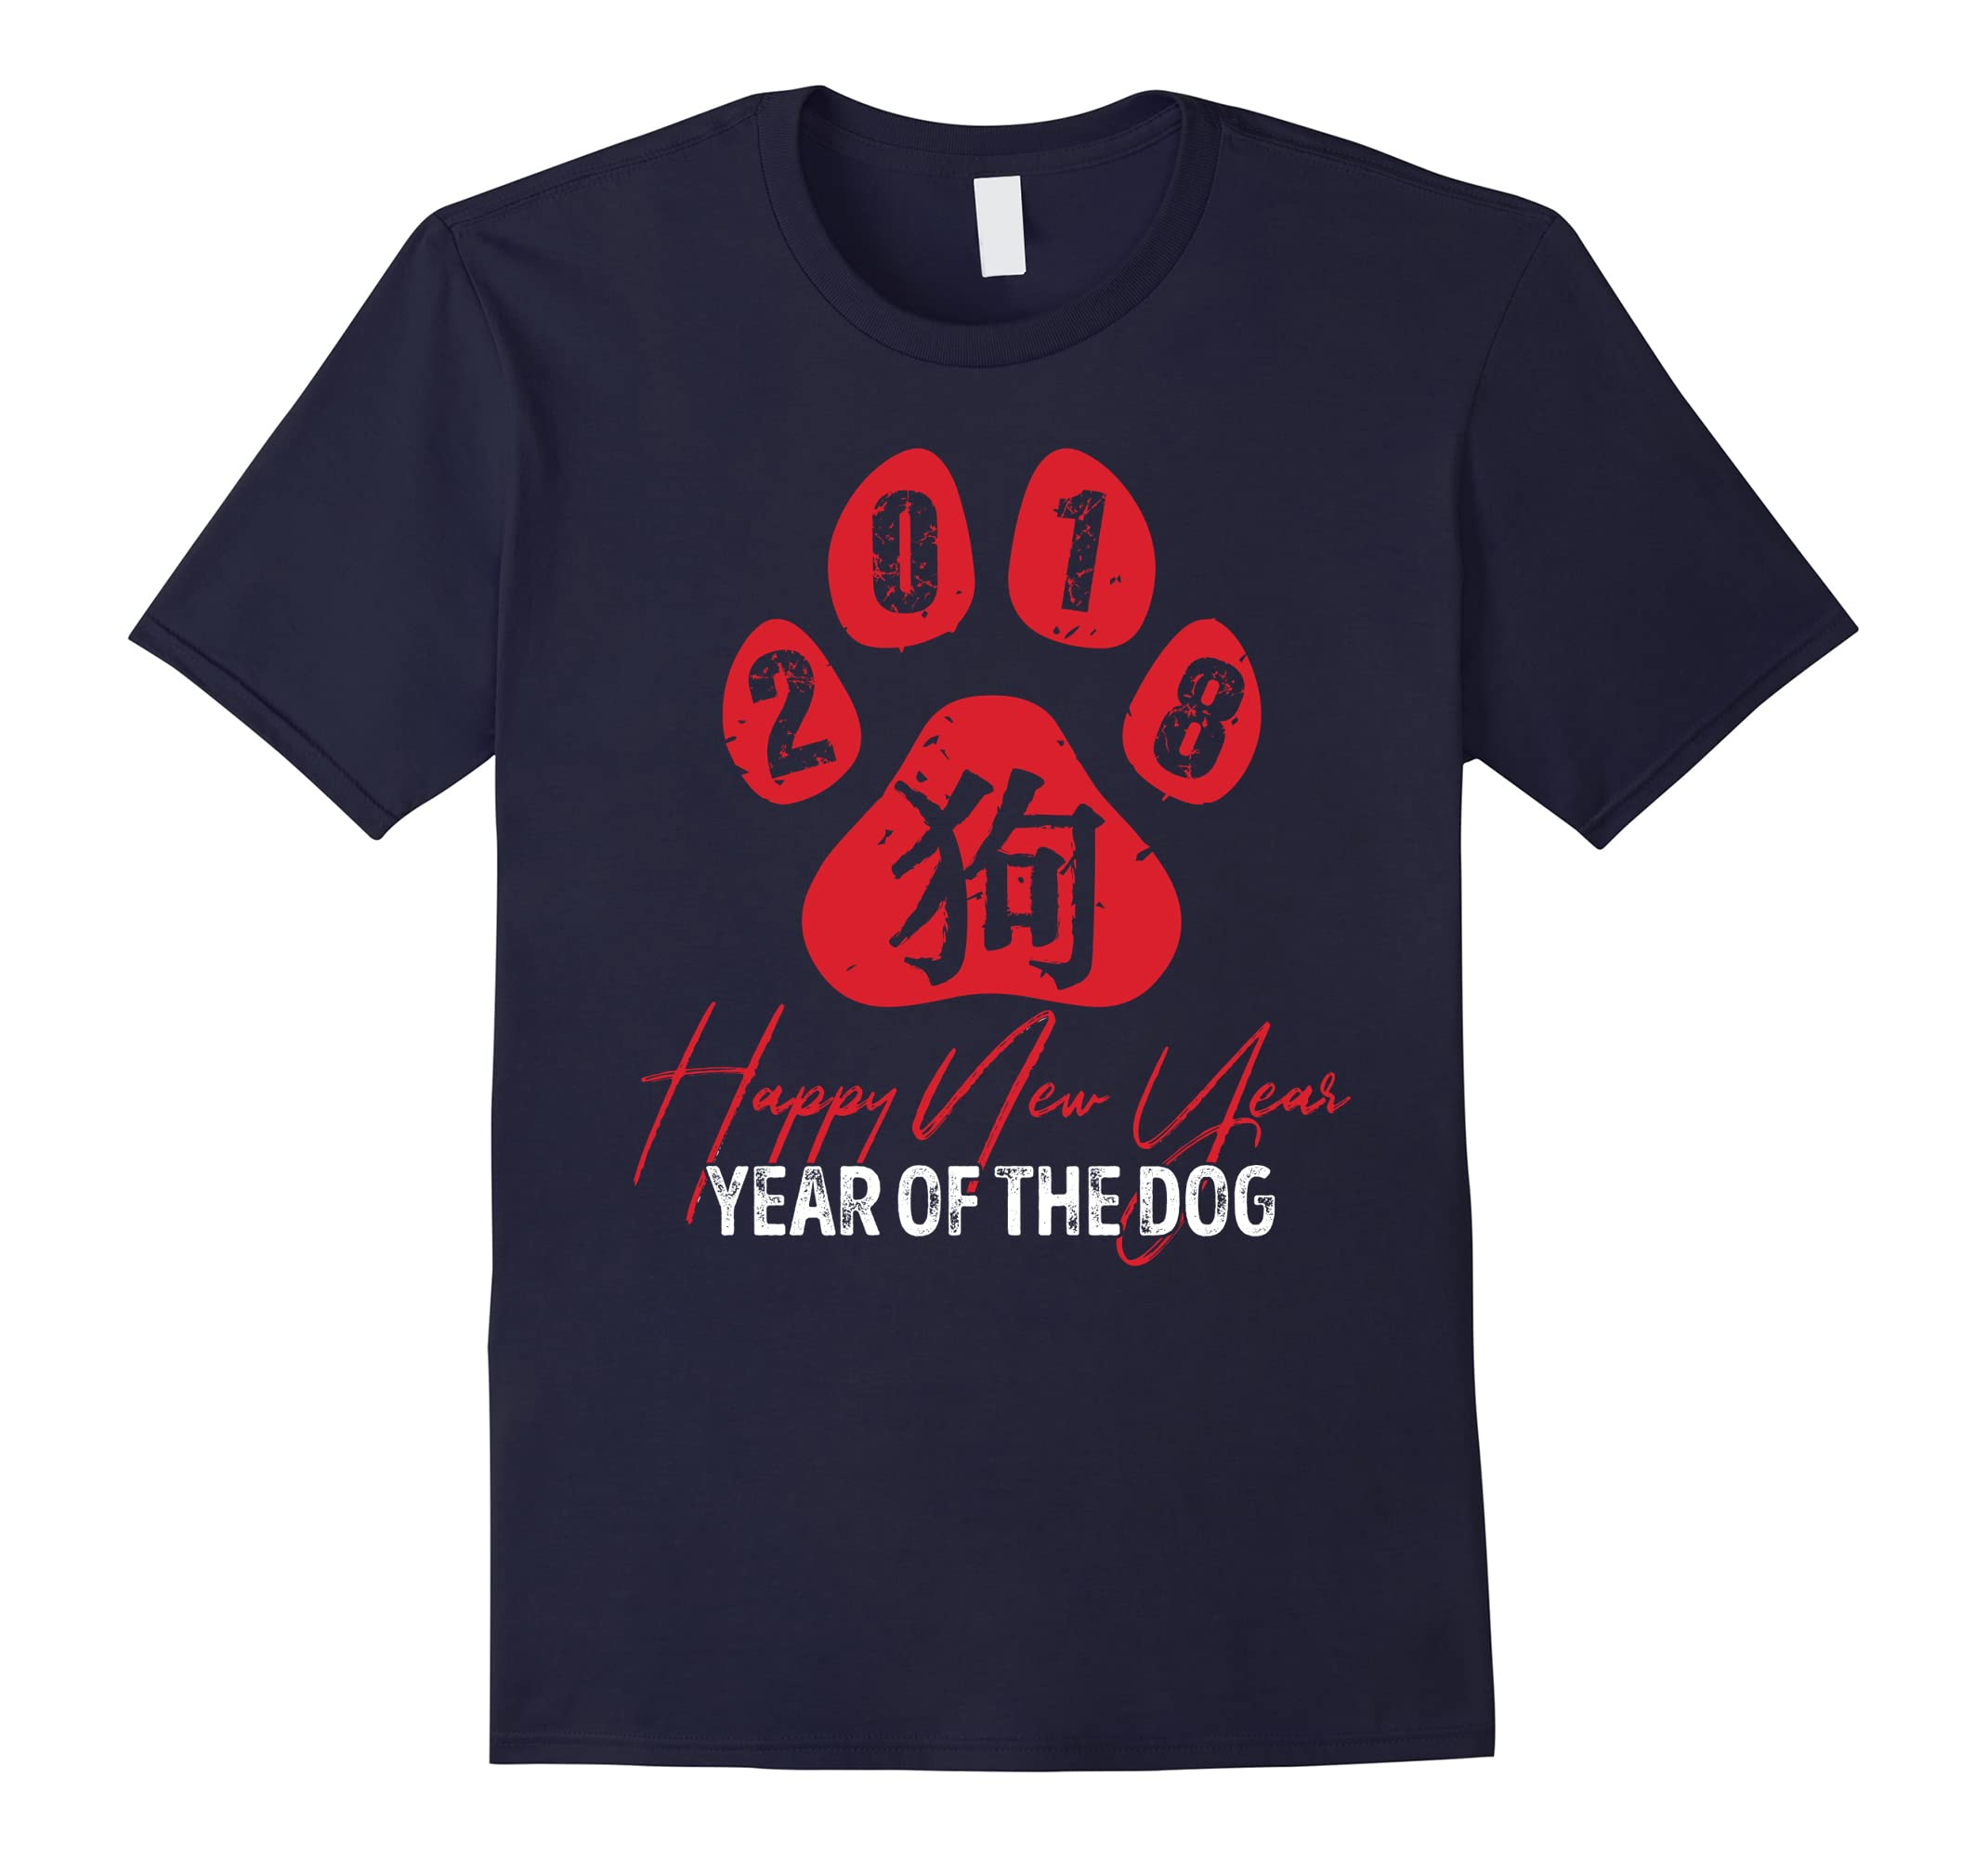 '2018 Happy New Year' Great Chinese New Year Dog Shirt-ah my shirt one gift